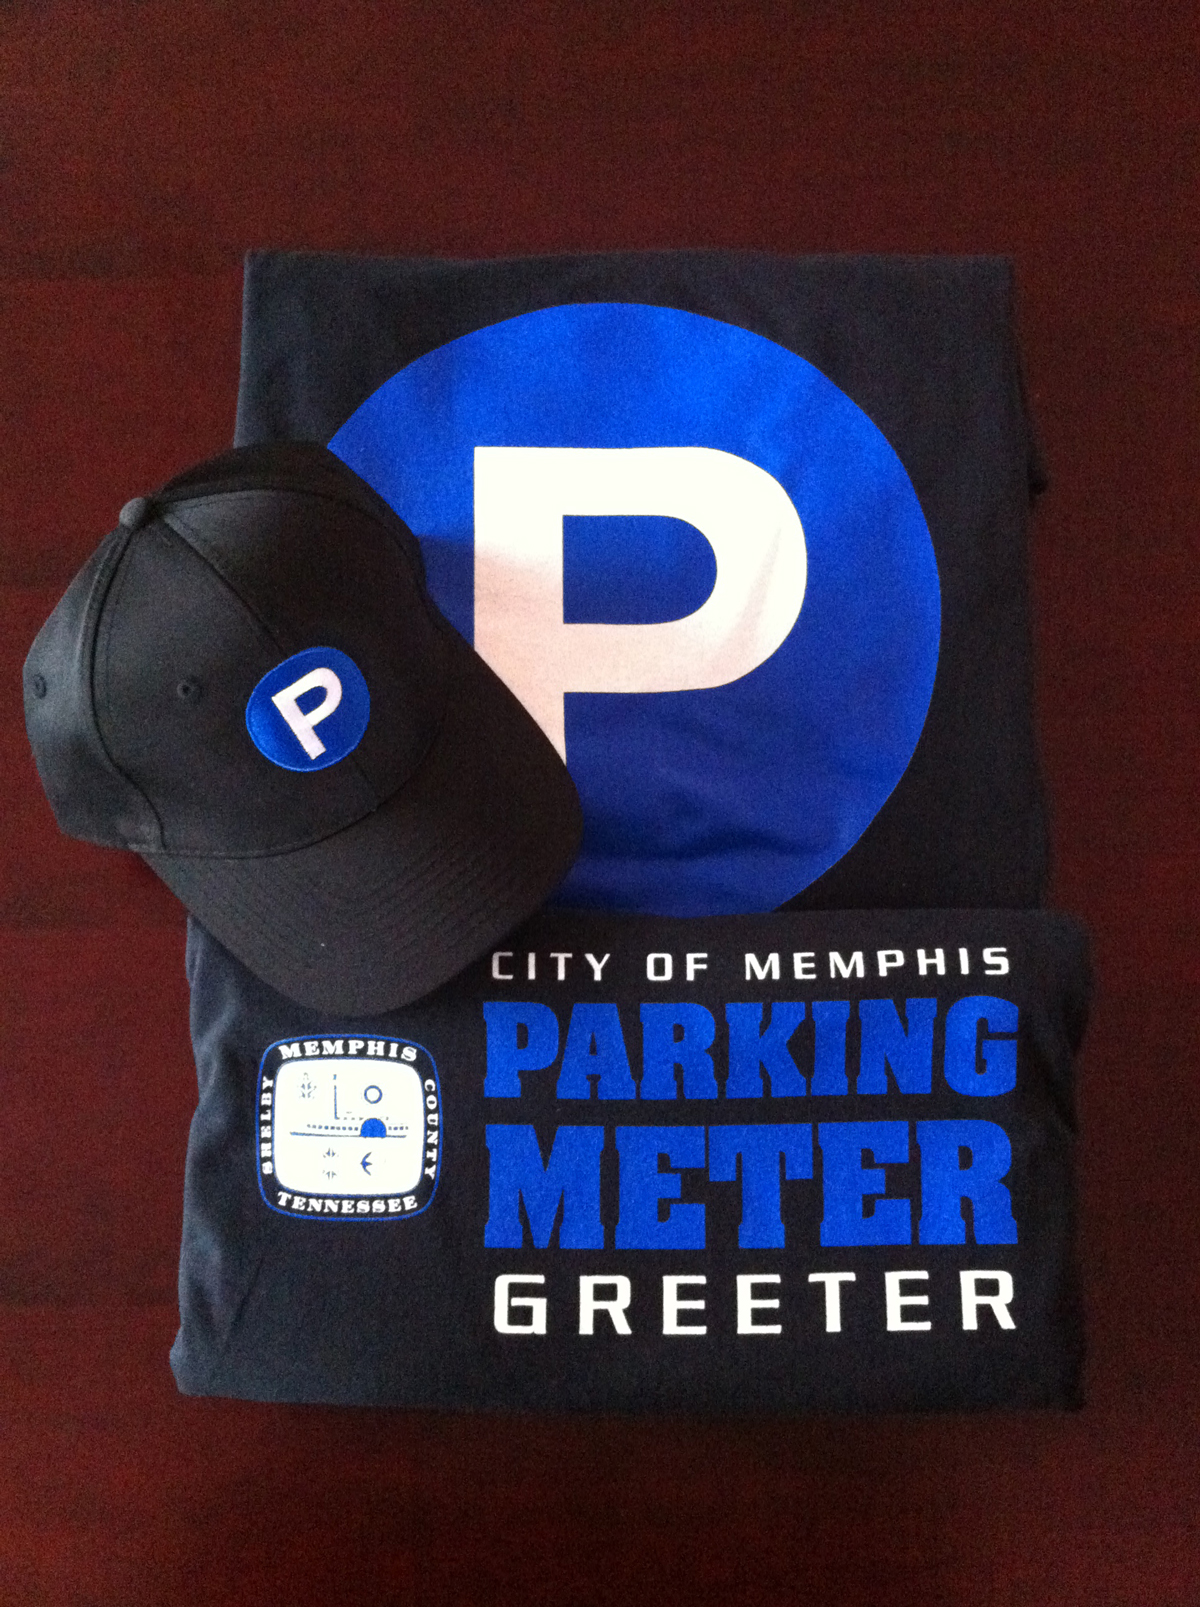 City of Memphis Parking Meters Apparel